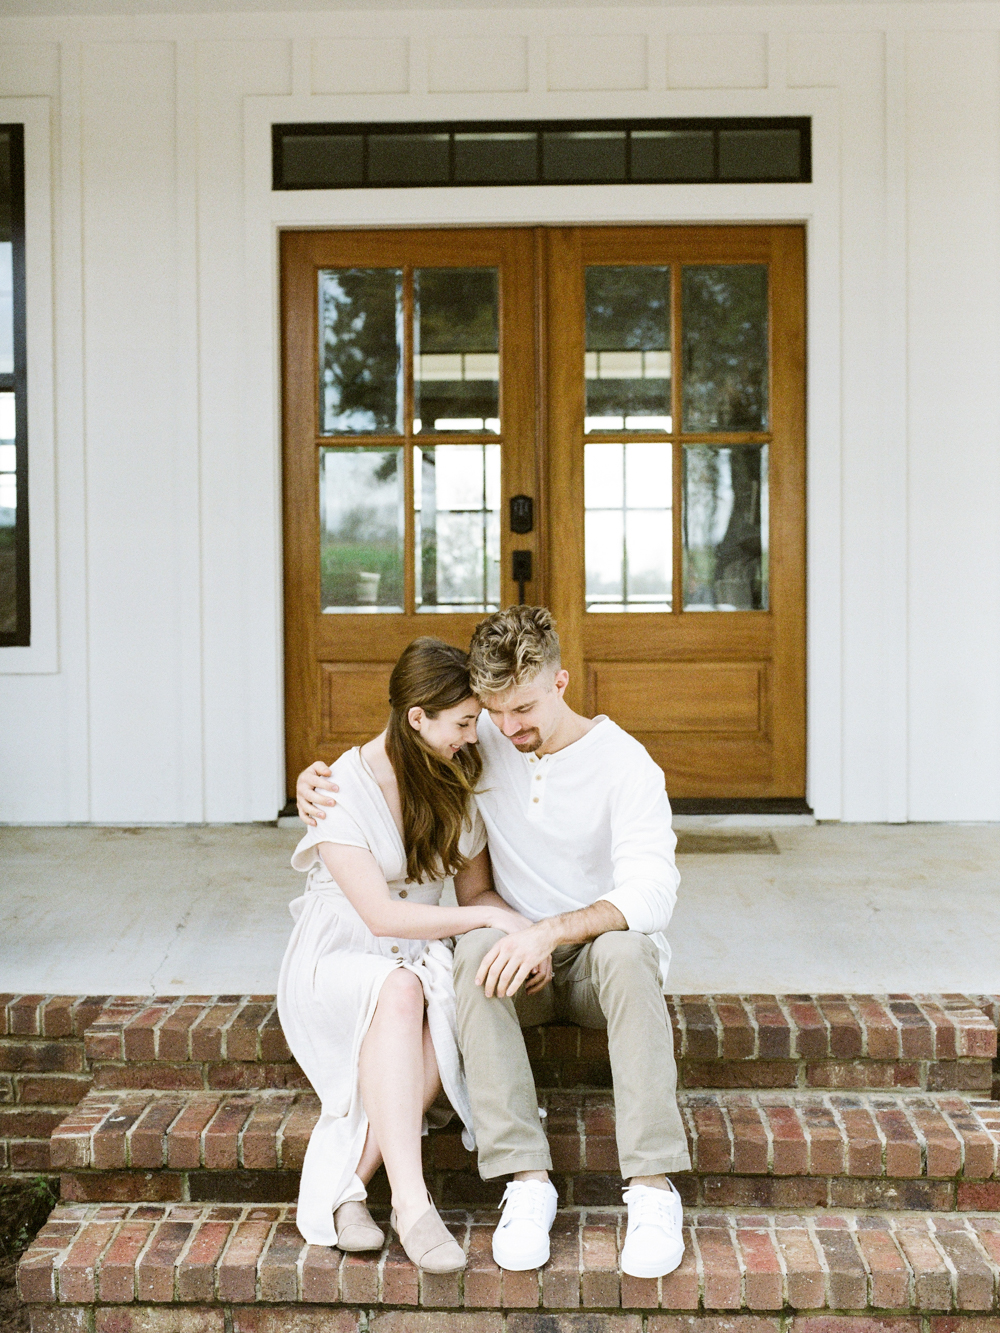 at home engagement session - Christine Gosch - featured on Magnolia Rouge - film photographer - elopement and intimate wedding photographer-21.jpg